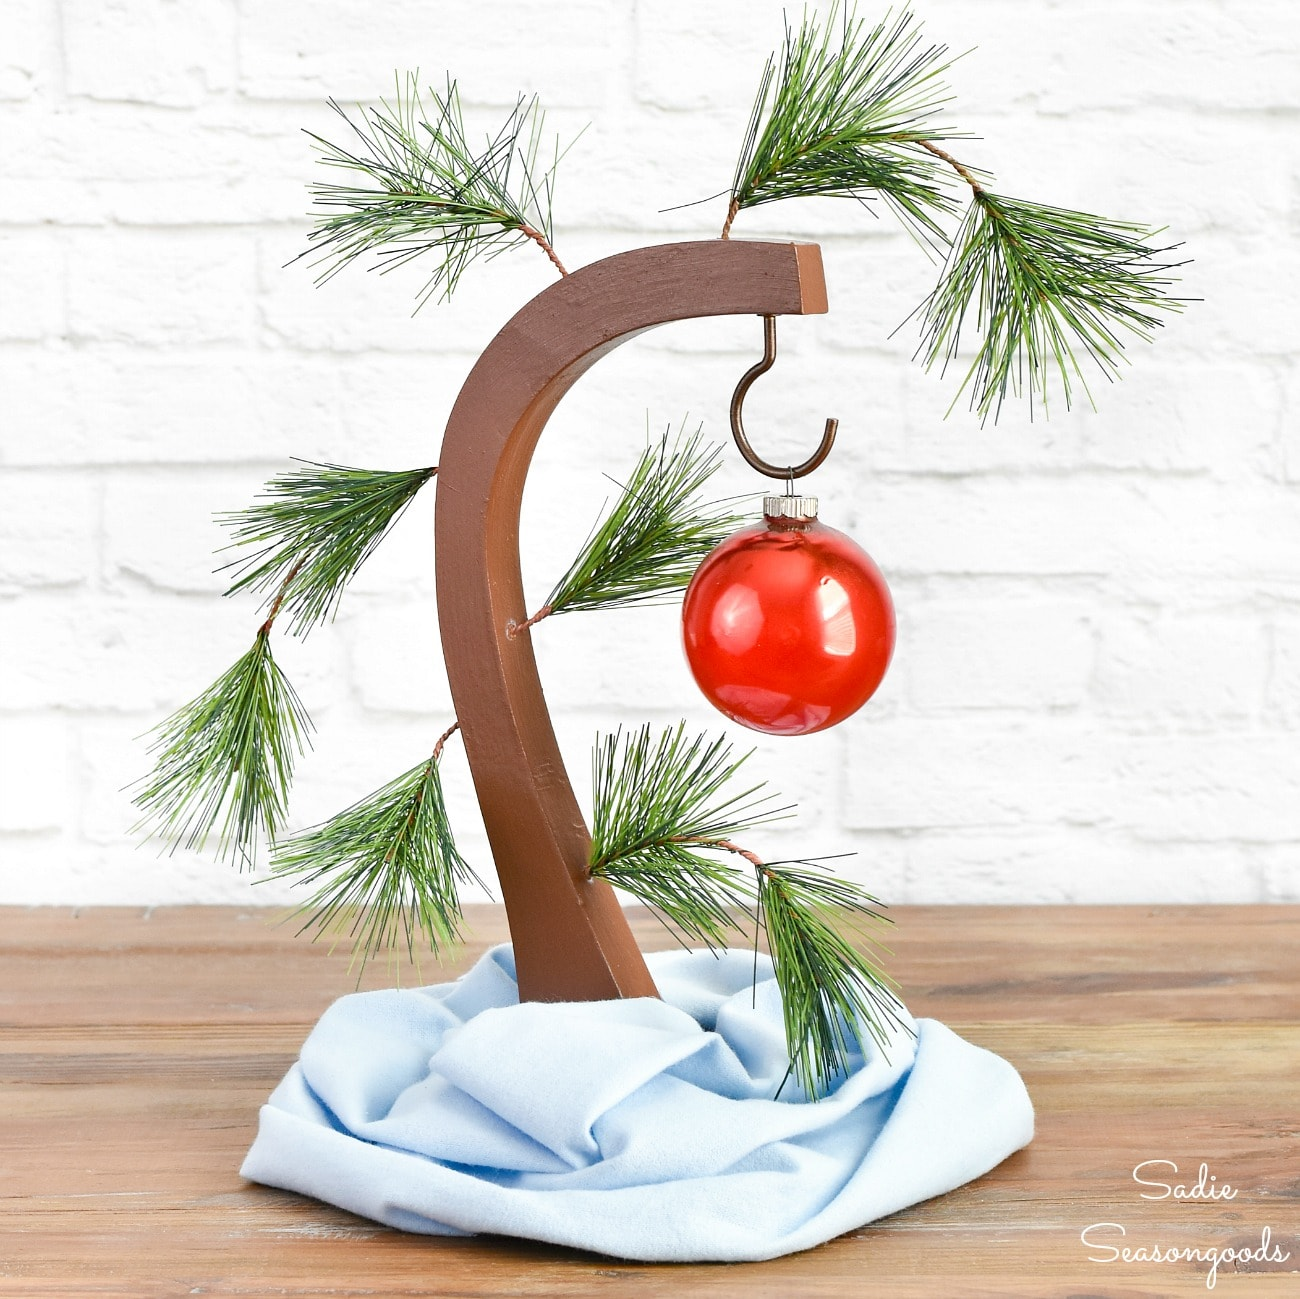 Upcycled Version of a Charlie Brown Christmas Tree